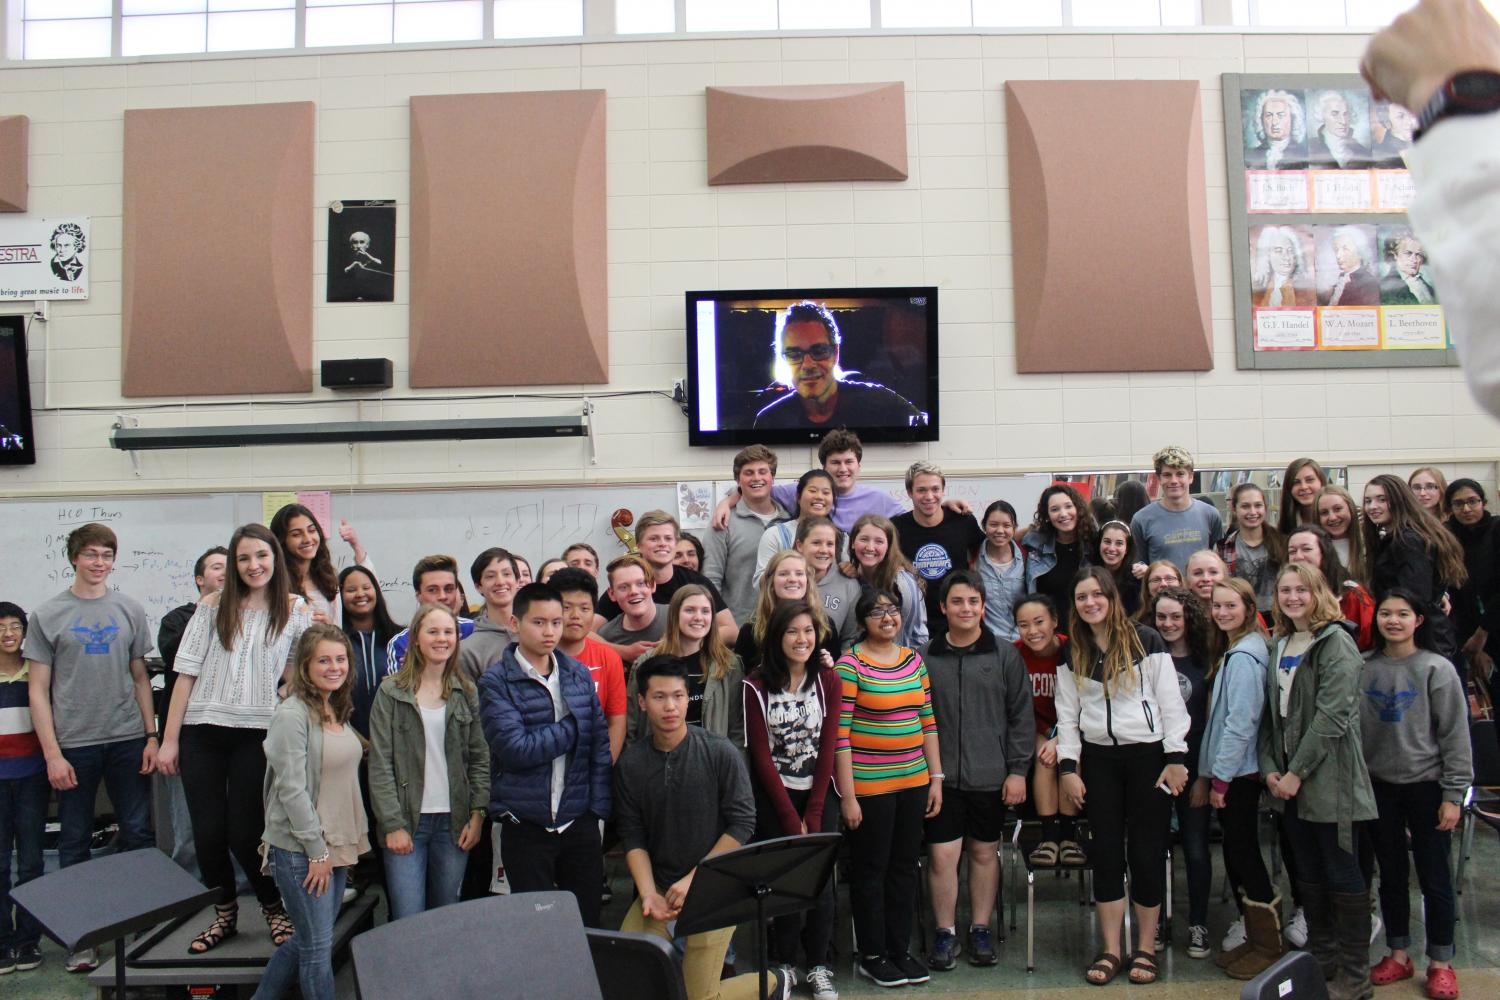 Music students pose with Beltrami.